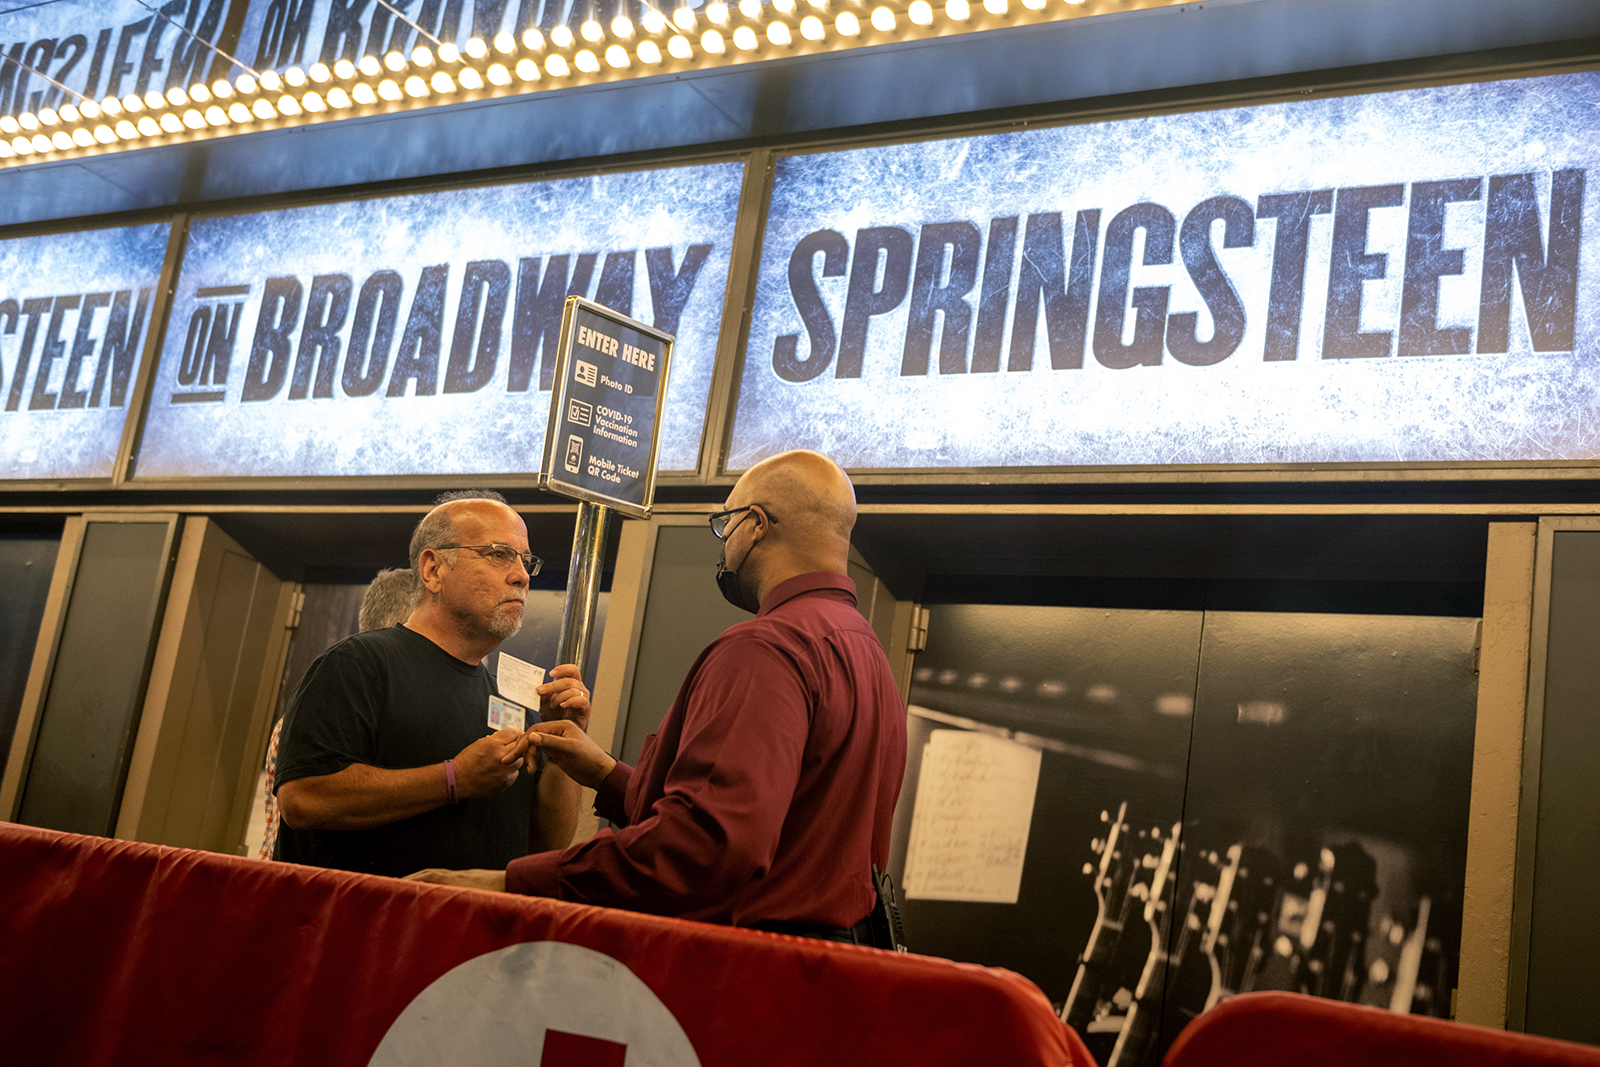 """A person without a mask shows their Covid-19 vaccination card before entering """"Springsteen on Broadway"""" at the St. James Theatre in Times Square on July 10, in New York City."""